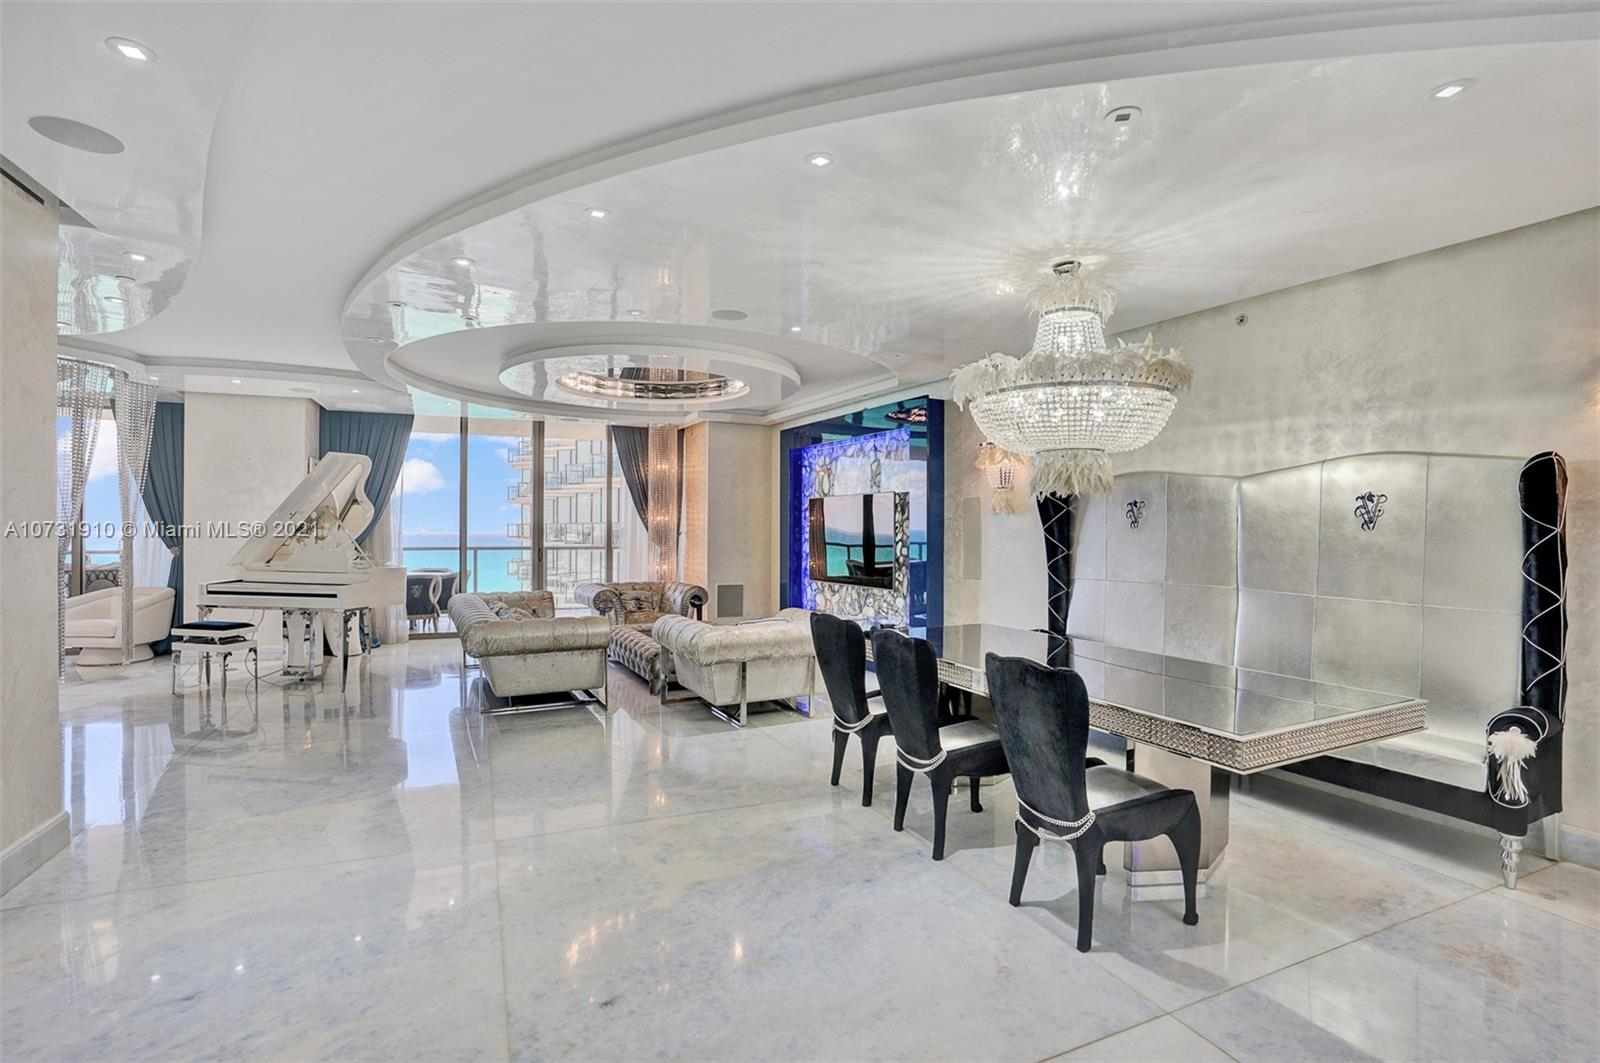 Gorgeous spacious unit with direct ocean and city views, 3 bdr + DEN/3.5bth in St Regis, Bal Harbour. Rare floor plan 05 and 04 combined by the developer - very spacious and large unit! Unit features sleek floors, pearlescent venetian stucco throughout, drop ceilings, customized lighting, high-tech built-in appliances. Enjoy the ocean and bay/city skyline views. Every room in a unit was designed to perfection by famous designer Roberto Cavalli and was also beautifully furnished with Visionnaire Furniture, created by Cavalli Family. Living at its finest, St. Regis offers 5-Star resort amenities with a 24 hour concierge and room service, private oceanfront cabanas, separate residents amenities, full service spa, 4 pools, three restaurants and more.